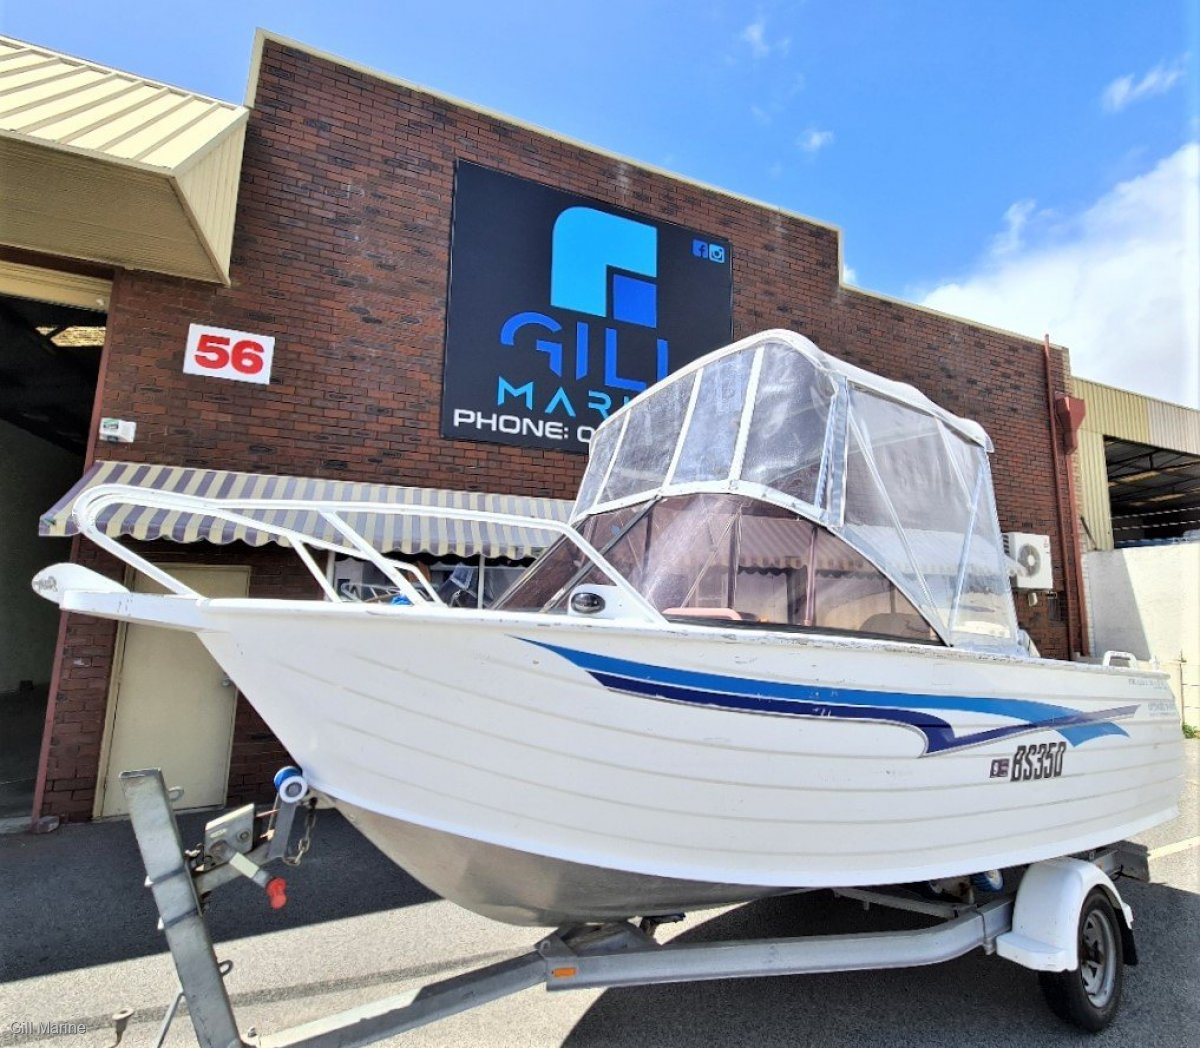 Trailcraft 470 Runabout freshly serviced boat and trailer ready for summer